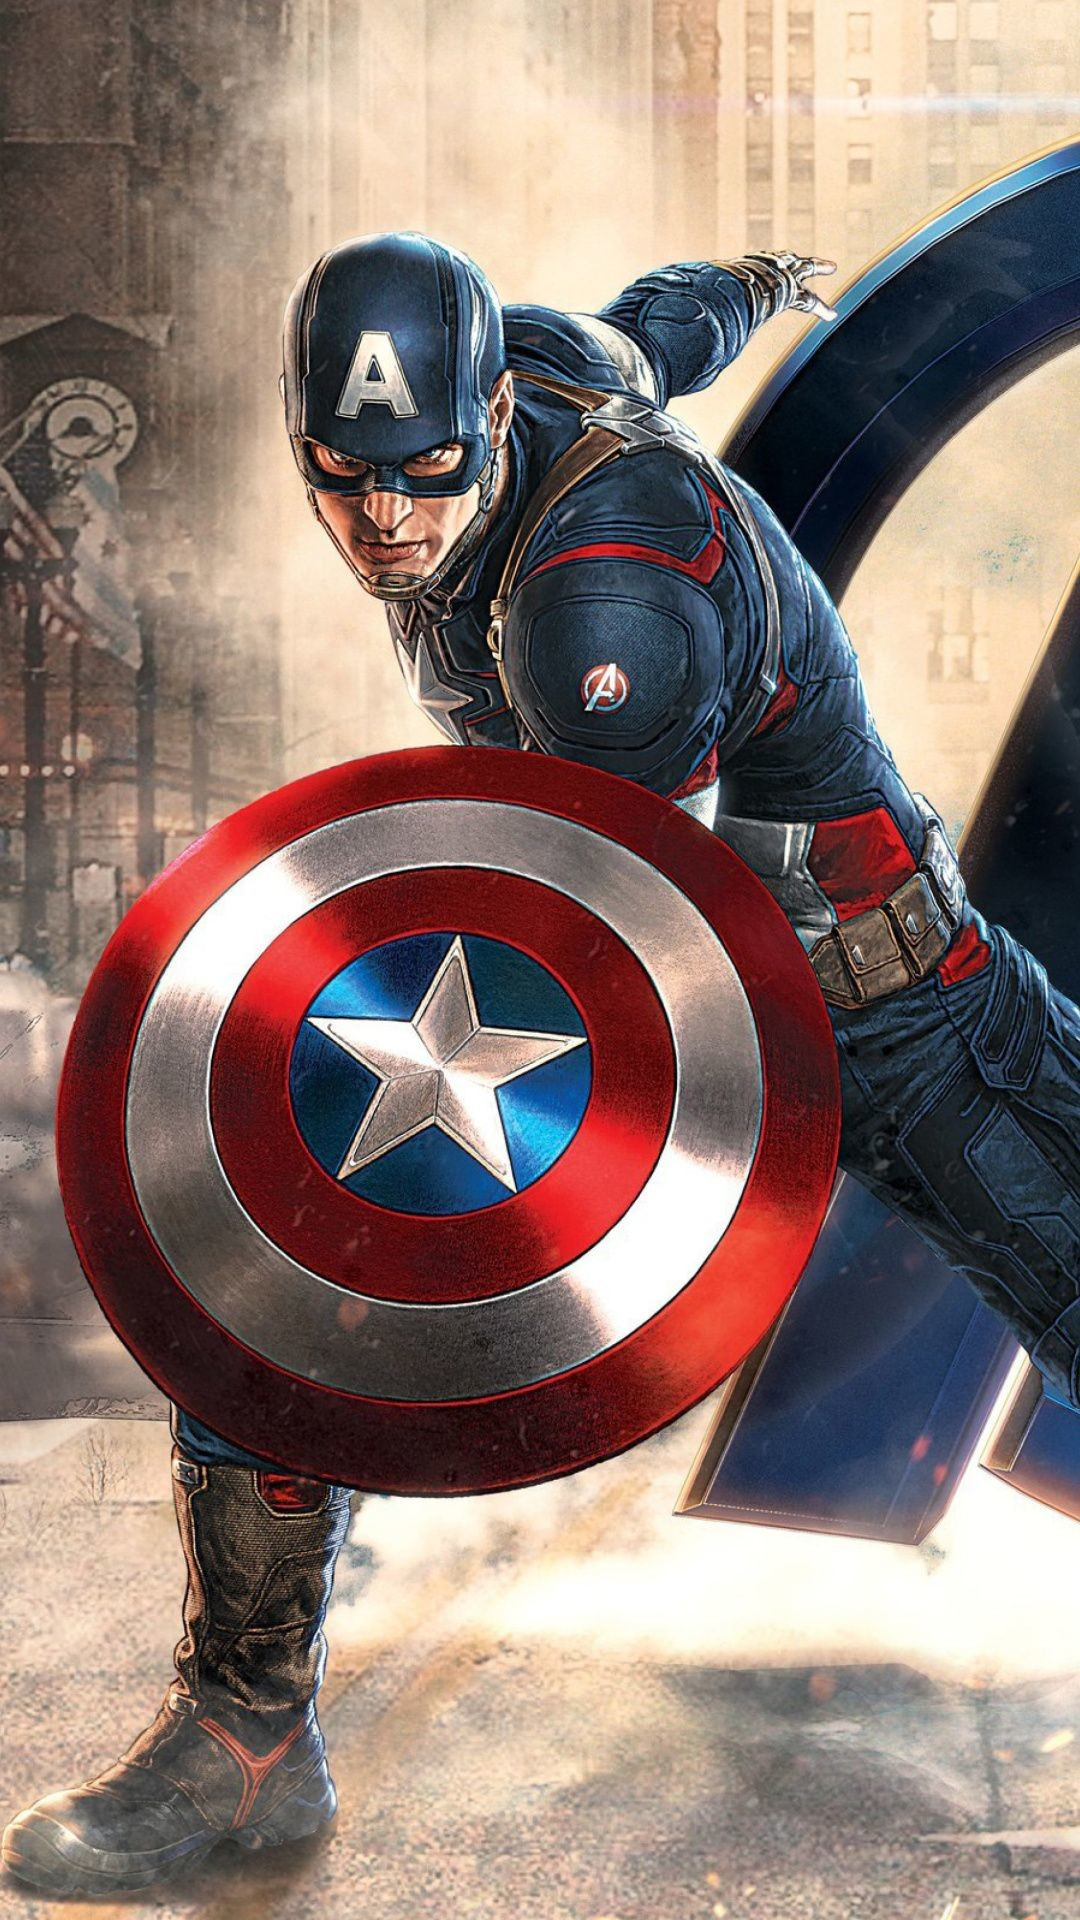 1080x1920, Captain America Wallpapers For Iphone 7, - Captain America Wallpaper Hd Avengers - HD Wallpaper